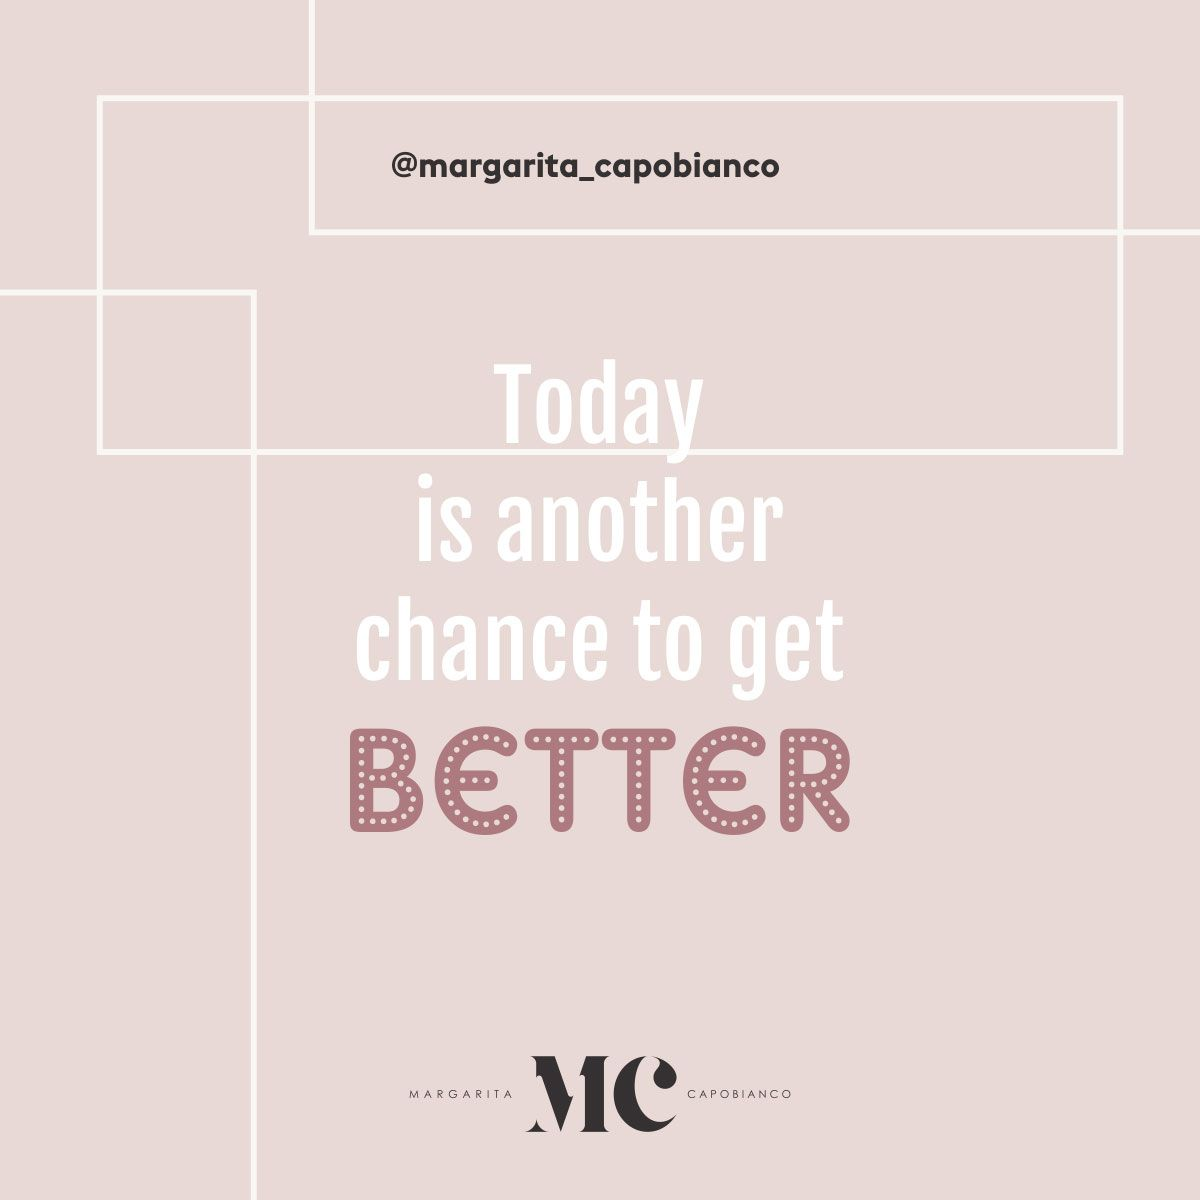 Today is another chance to get better!  #miamifl #southflorida #coralgables #brickell #miamilakes #realestate #realestateagent #realestatesales #realestatemiami #realestatebroker #realestateagents #casasenventa #luxuryhomes #casasdelujo #downtownmiami #miamirealestate #miamirealtor #miamirealtors #miamirealestateagent #homebuying #newhome #homesearch #buyingahome  @realestateempiregroup @margarita_capobianco